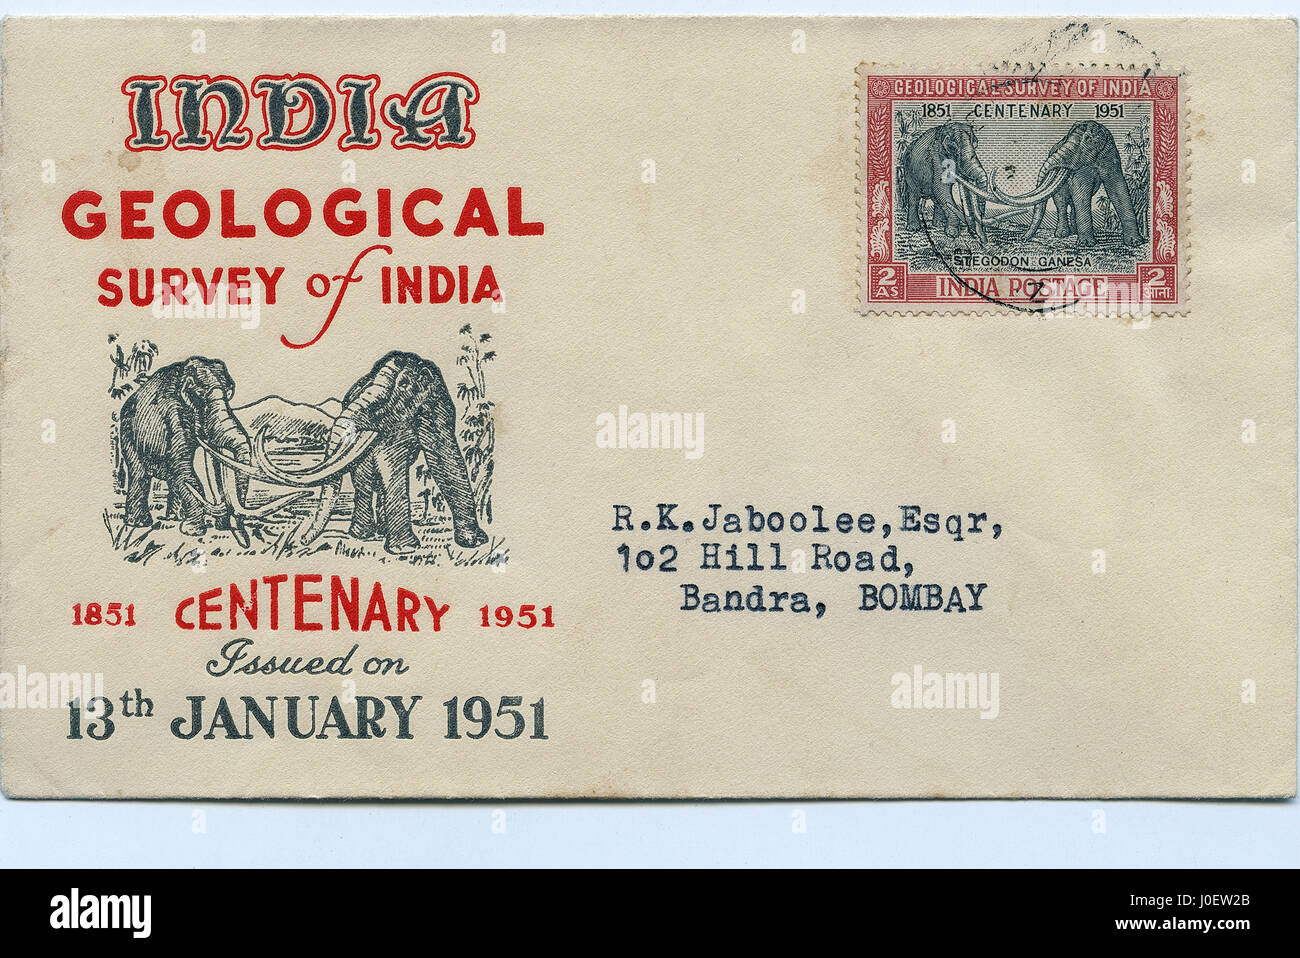 Geological survey, postage stamps, india, asia - Stock Image